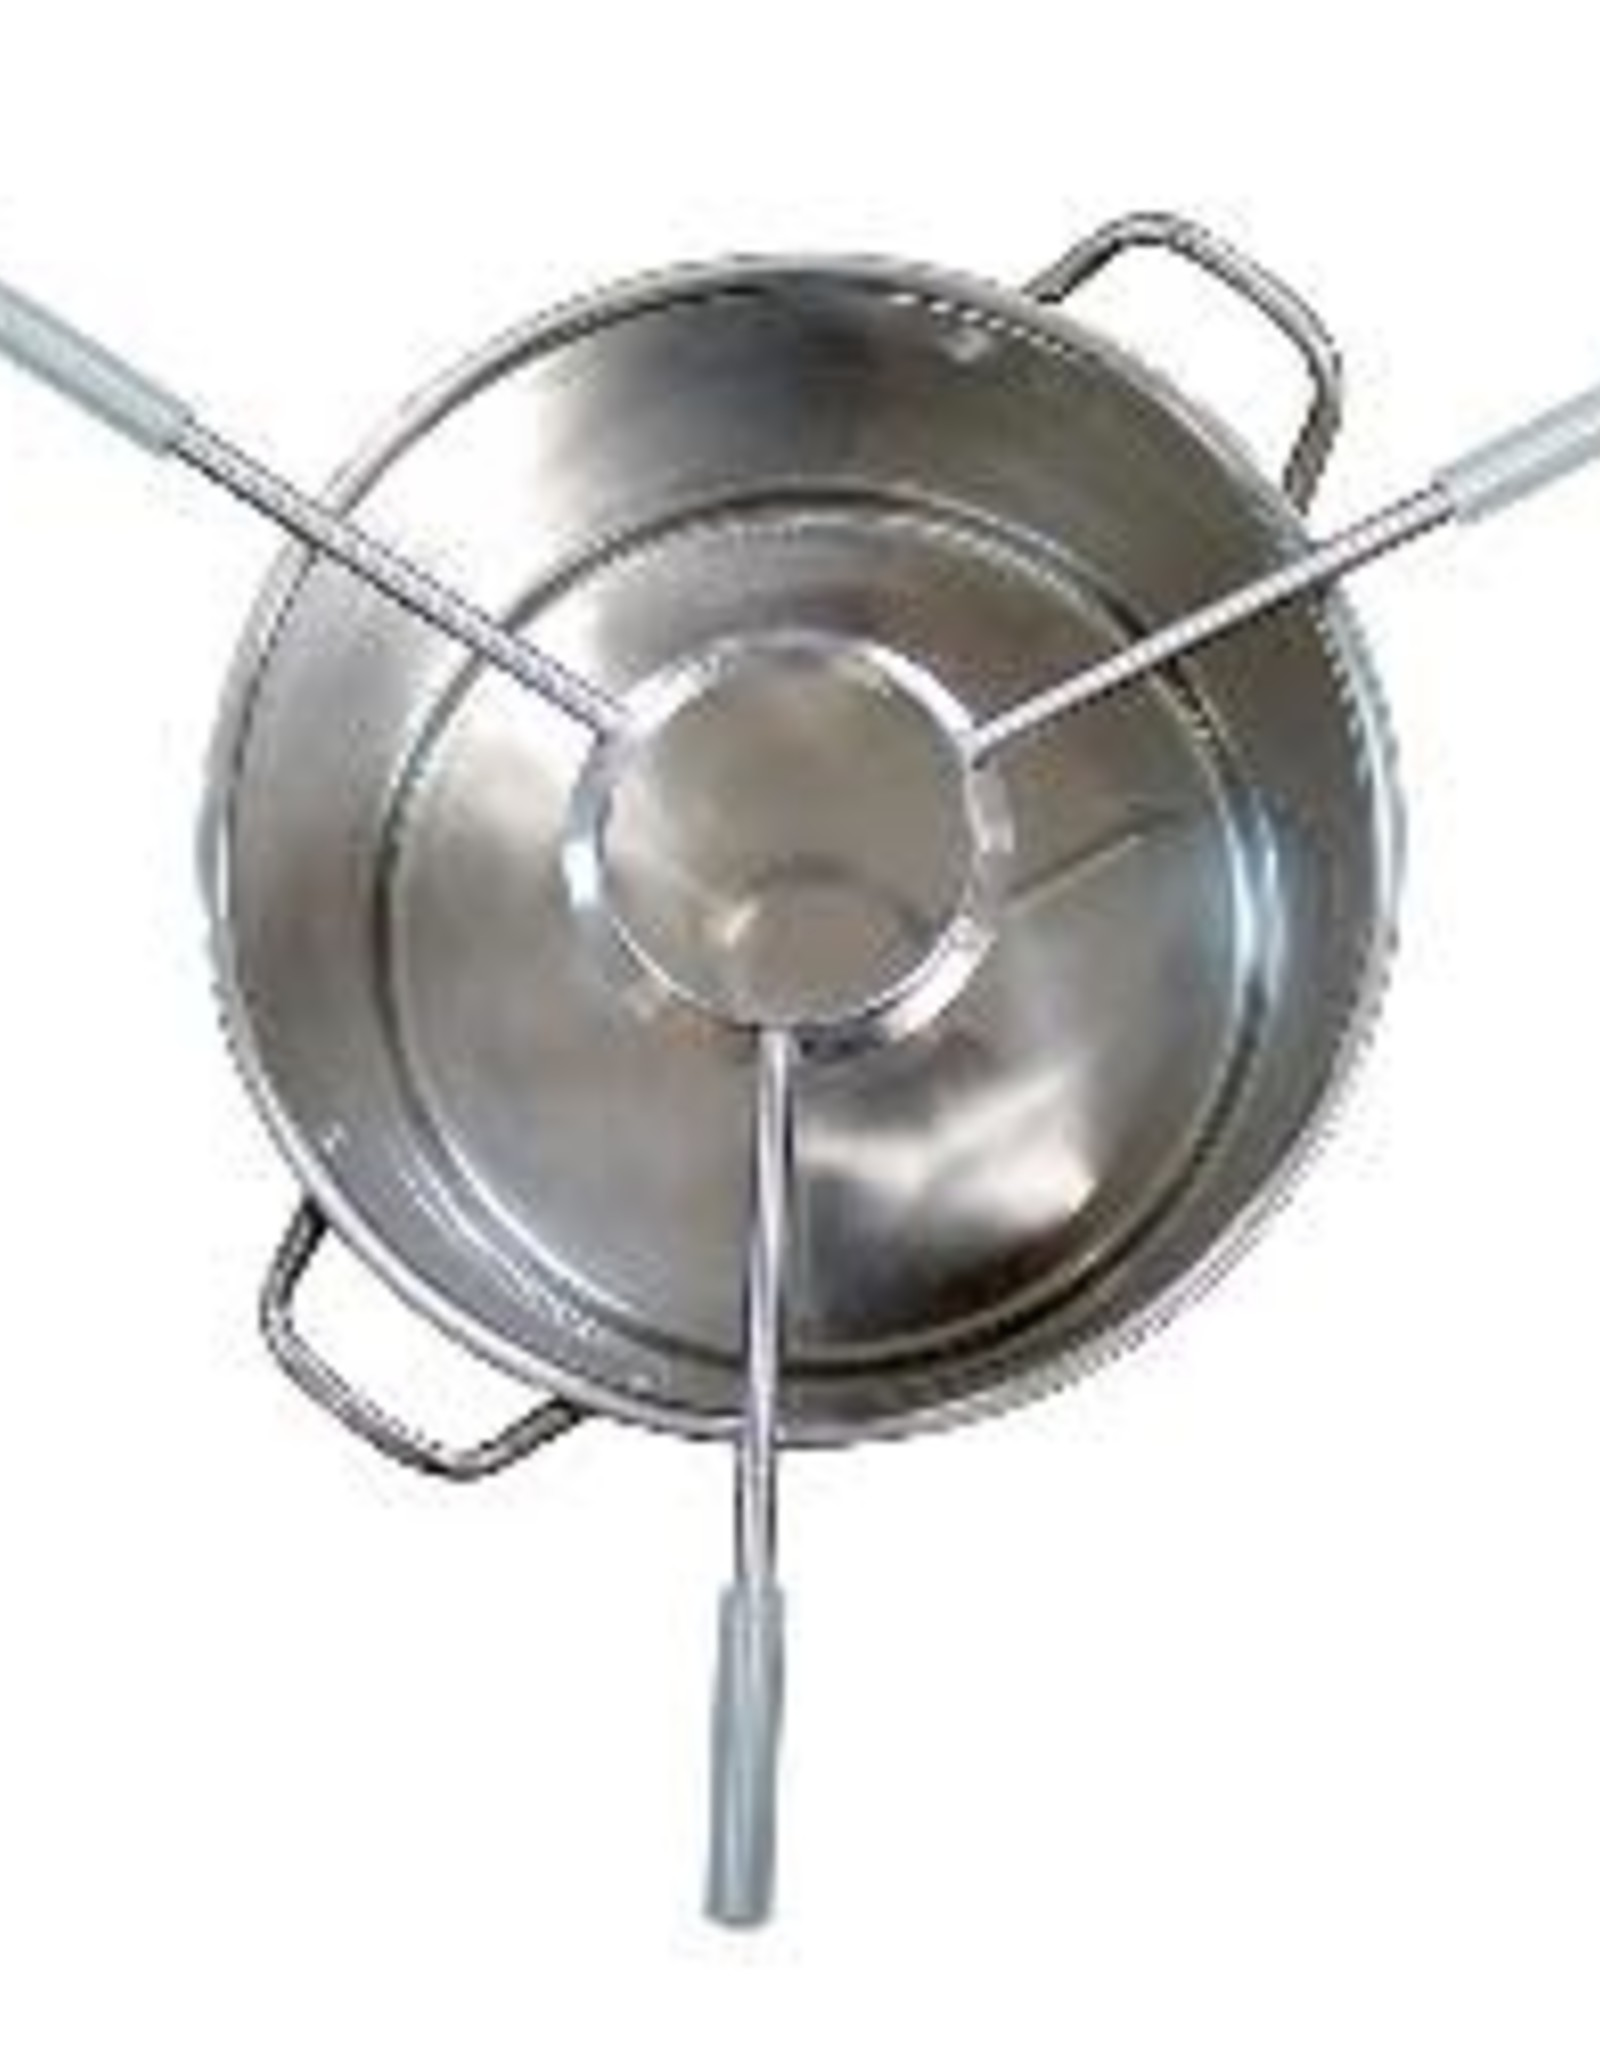 STAINLESS STEEL KETTLE SPIDER